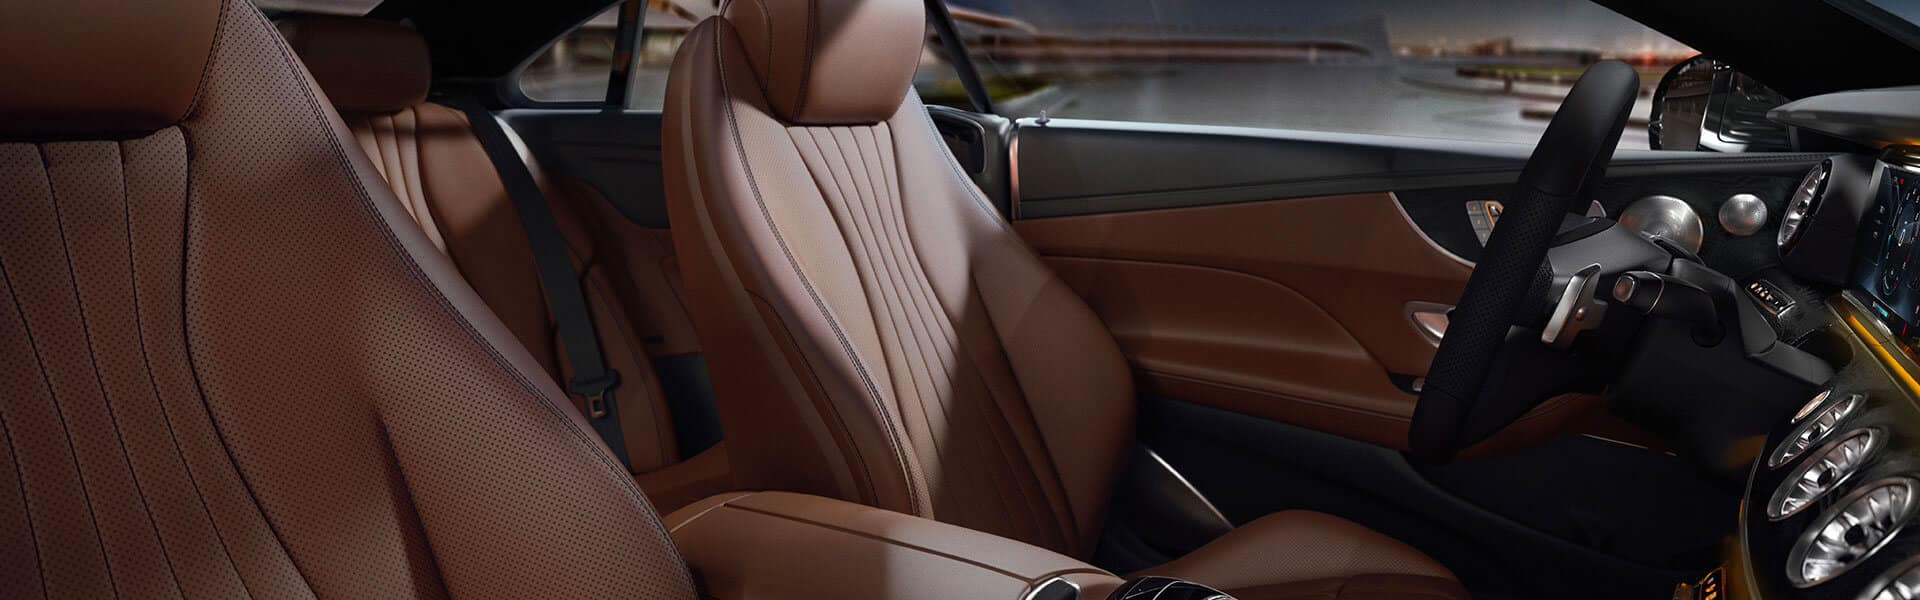 Mercedes Benz E 300 High-Class Interior